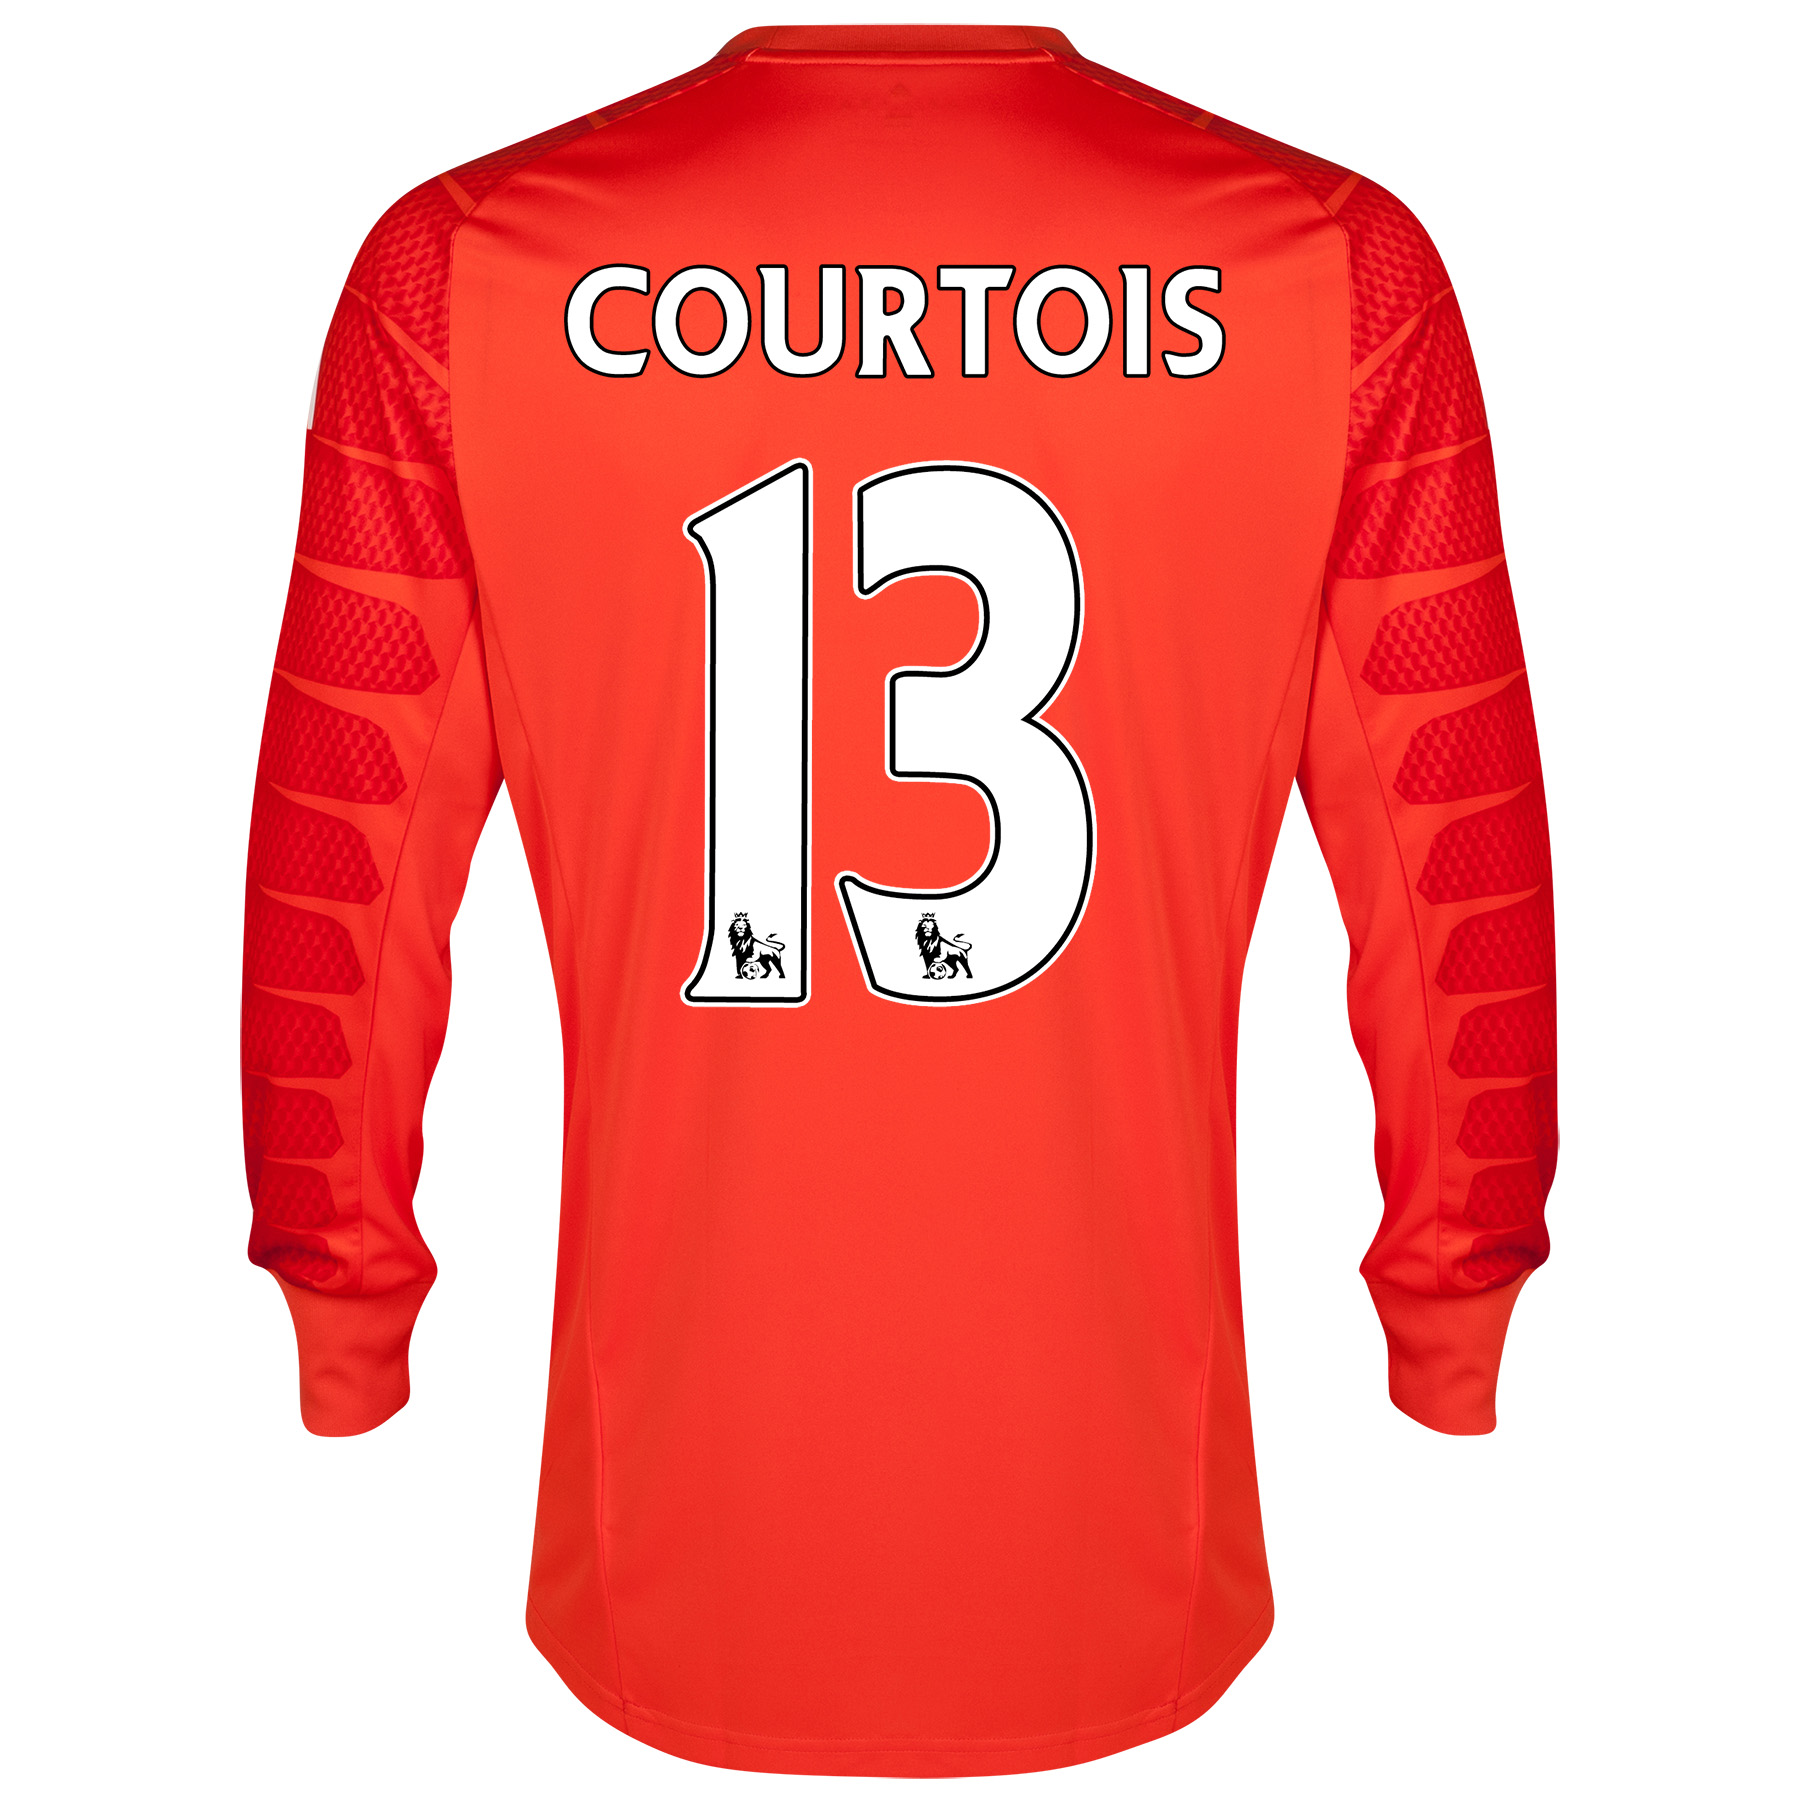 Chelsea Goalkeeper Shirt 2014/15 - Solar with Courtois 13 printing